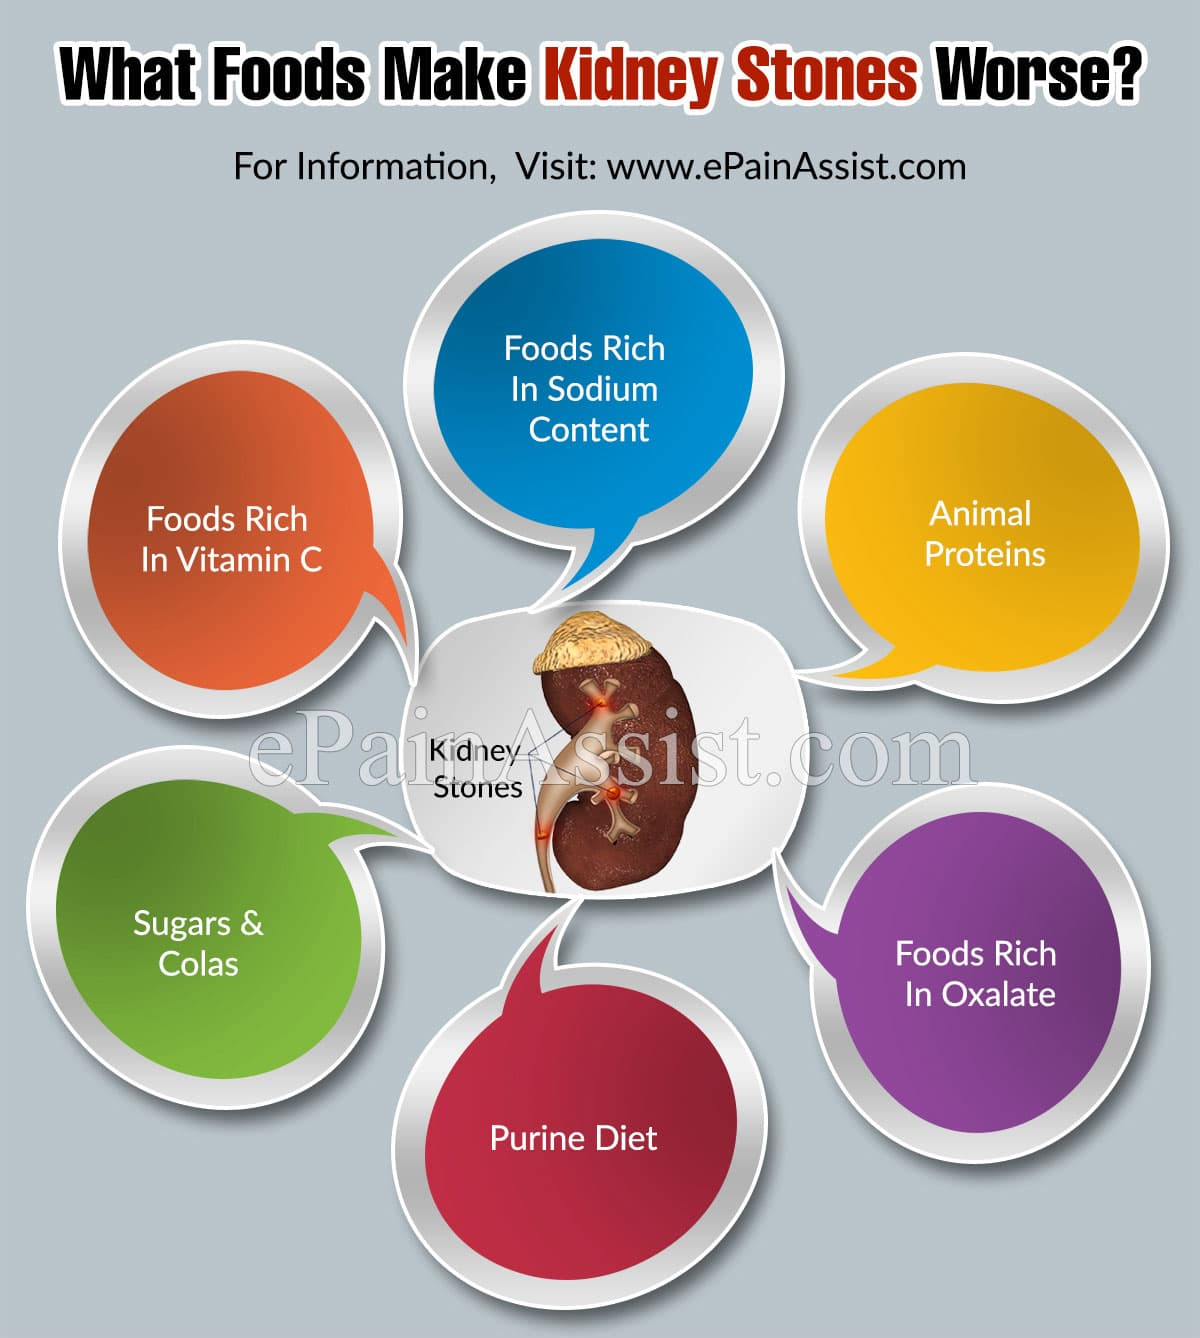 What Foods Make Kidney Stones Worse?